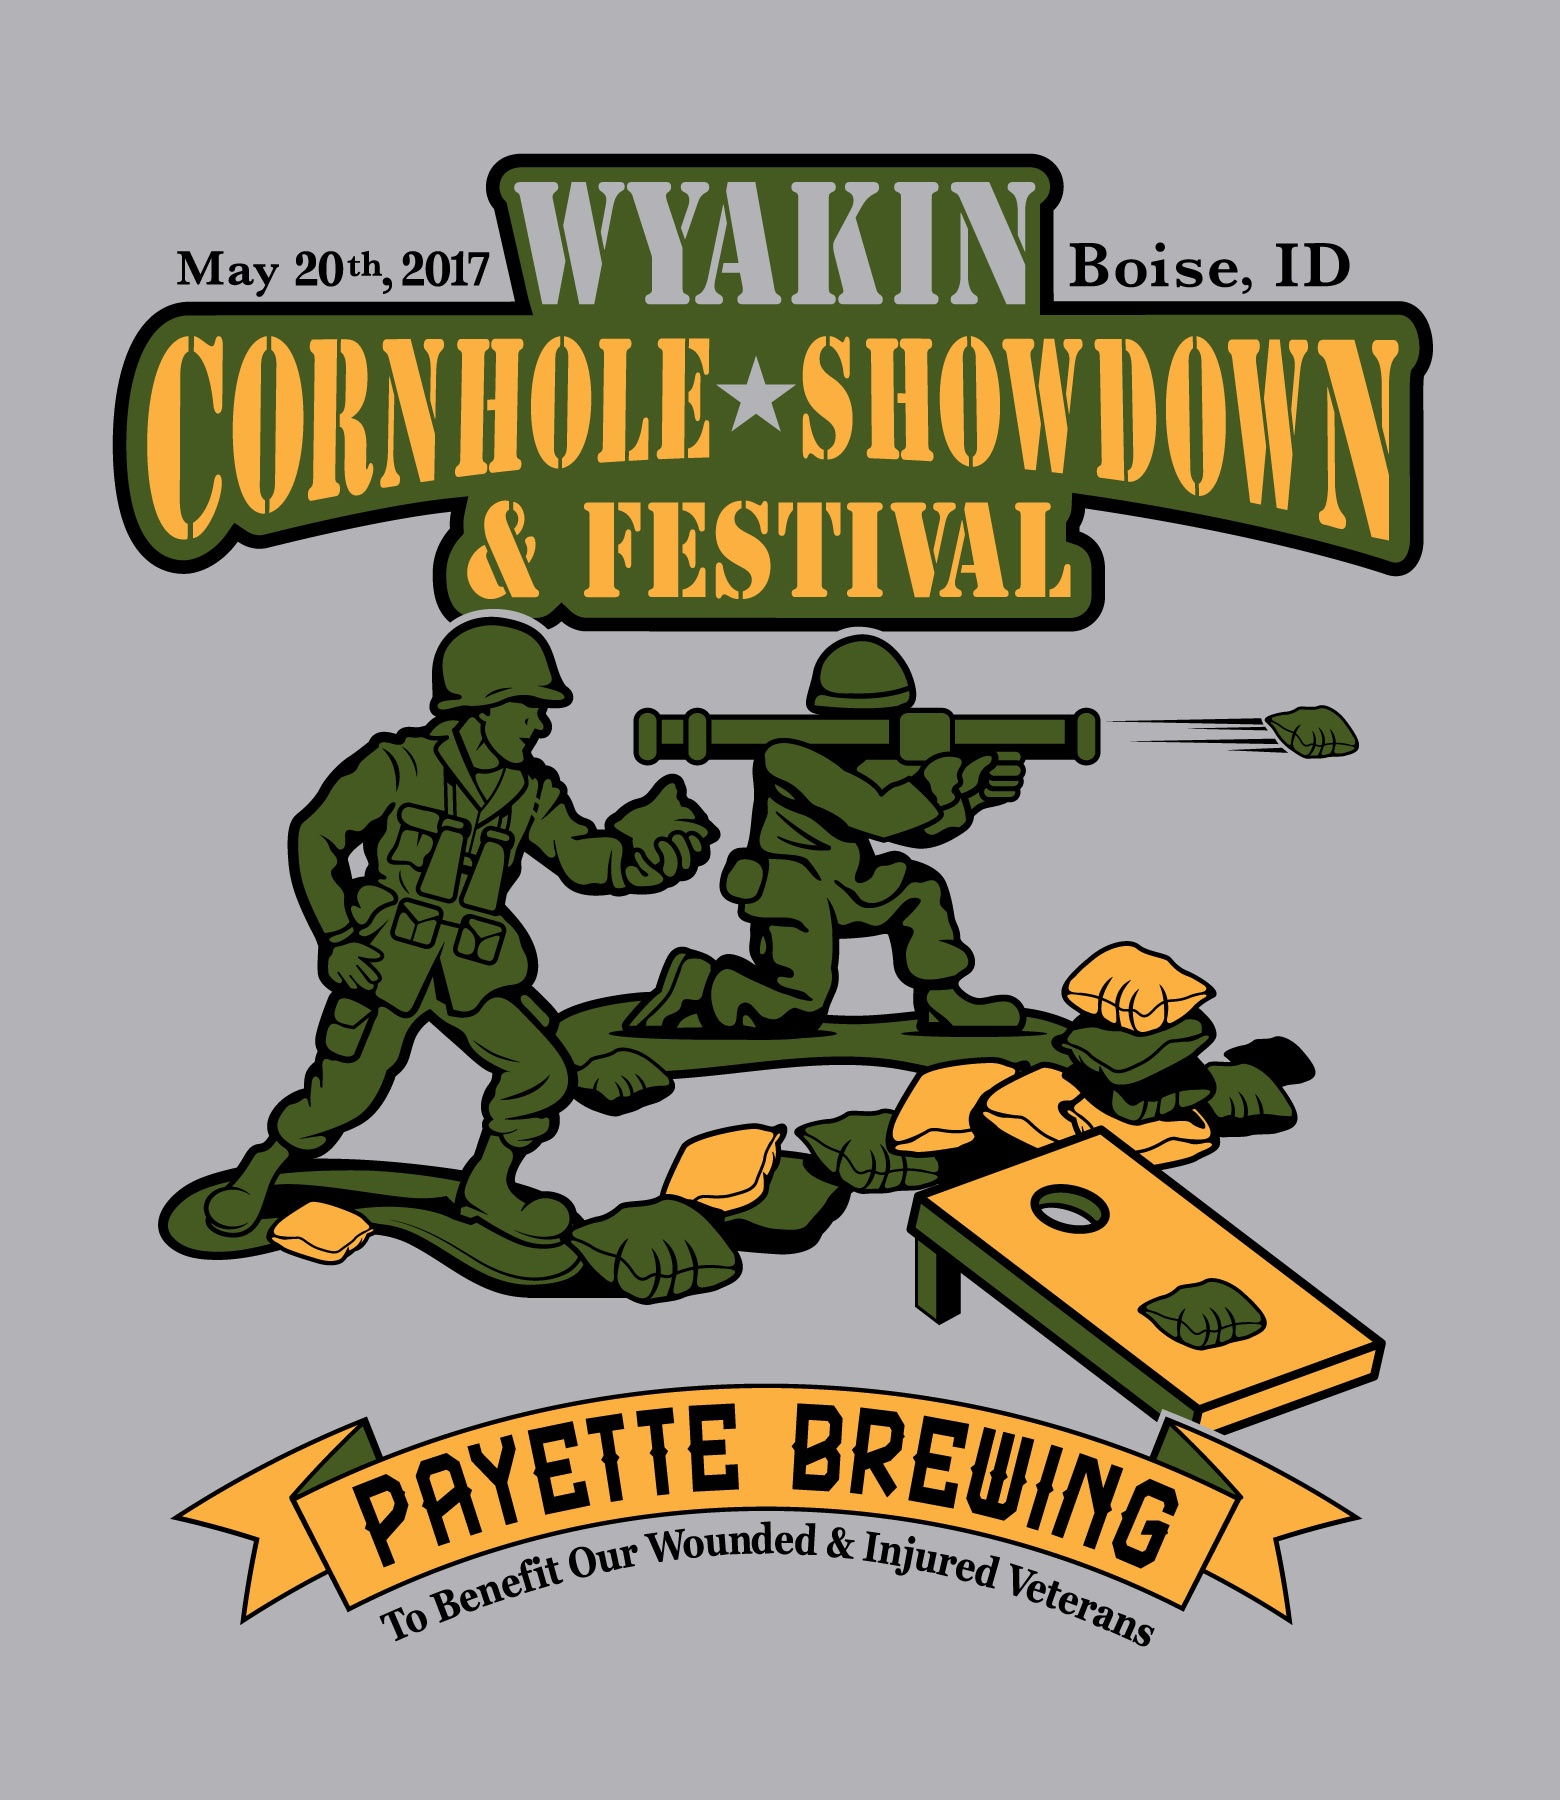 Wyakin Cornhole Showdown t-shirt logo